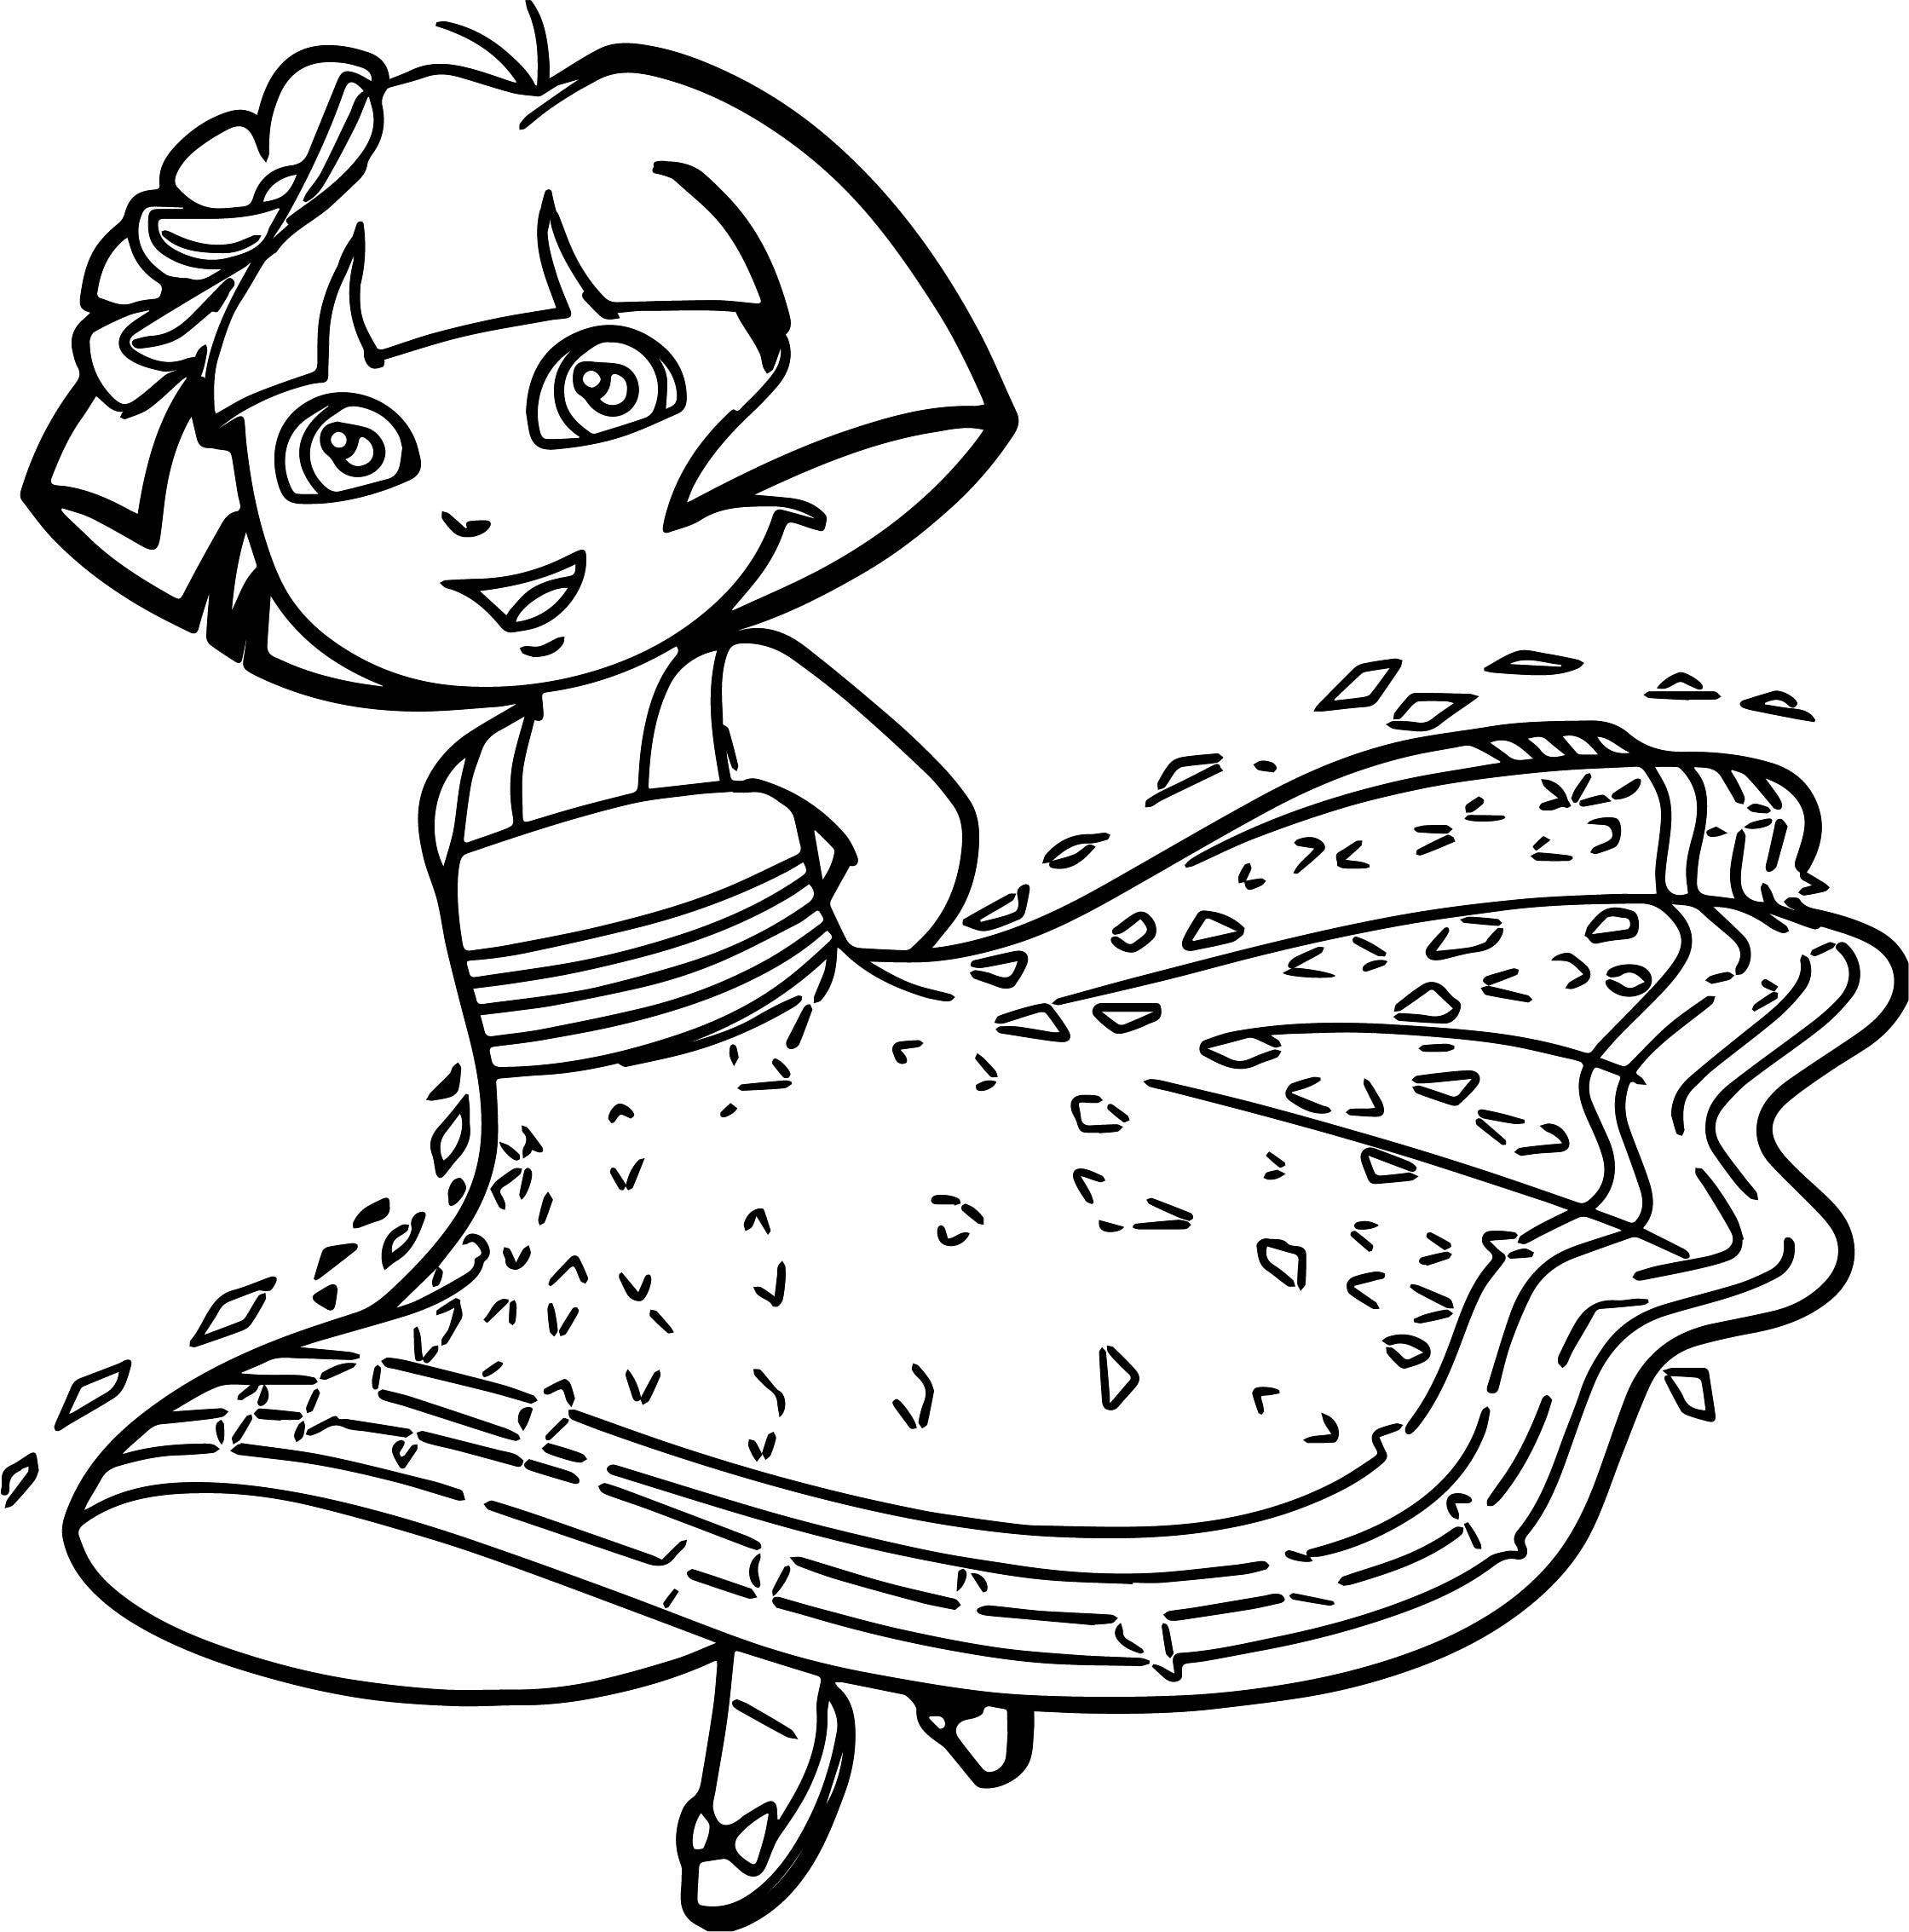 dora free coloring pages dora halloween coloring pages at getcoloringscom free coloring dora pages free